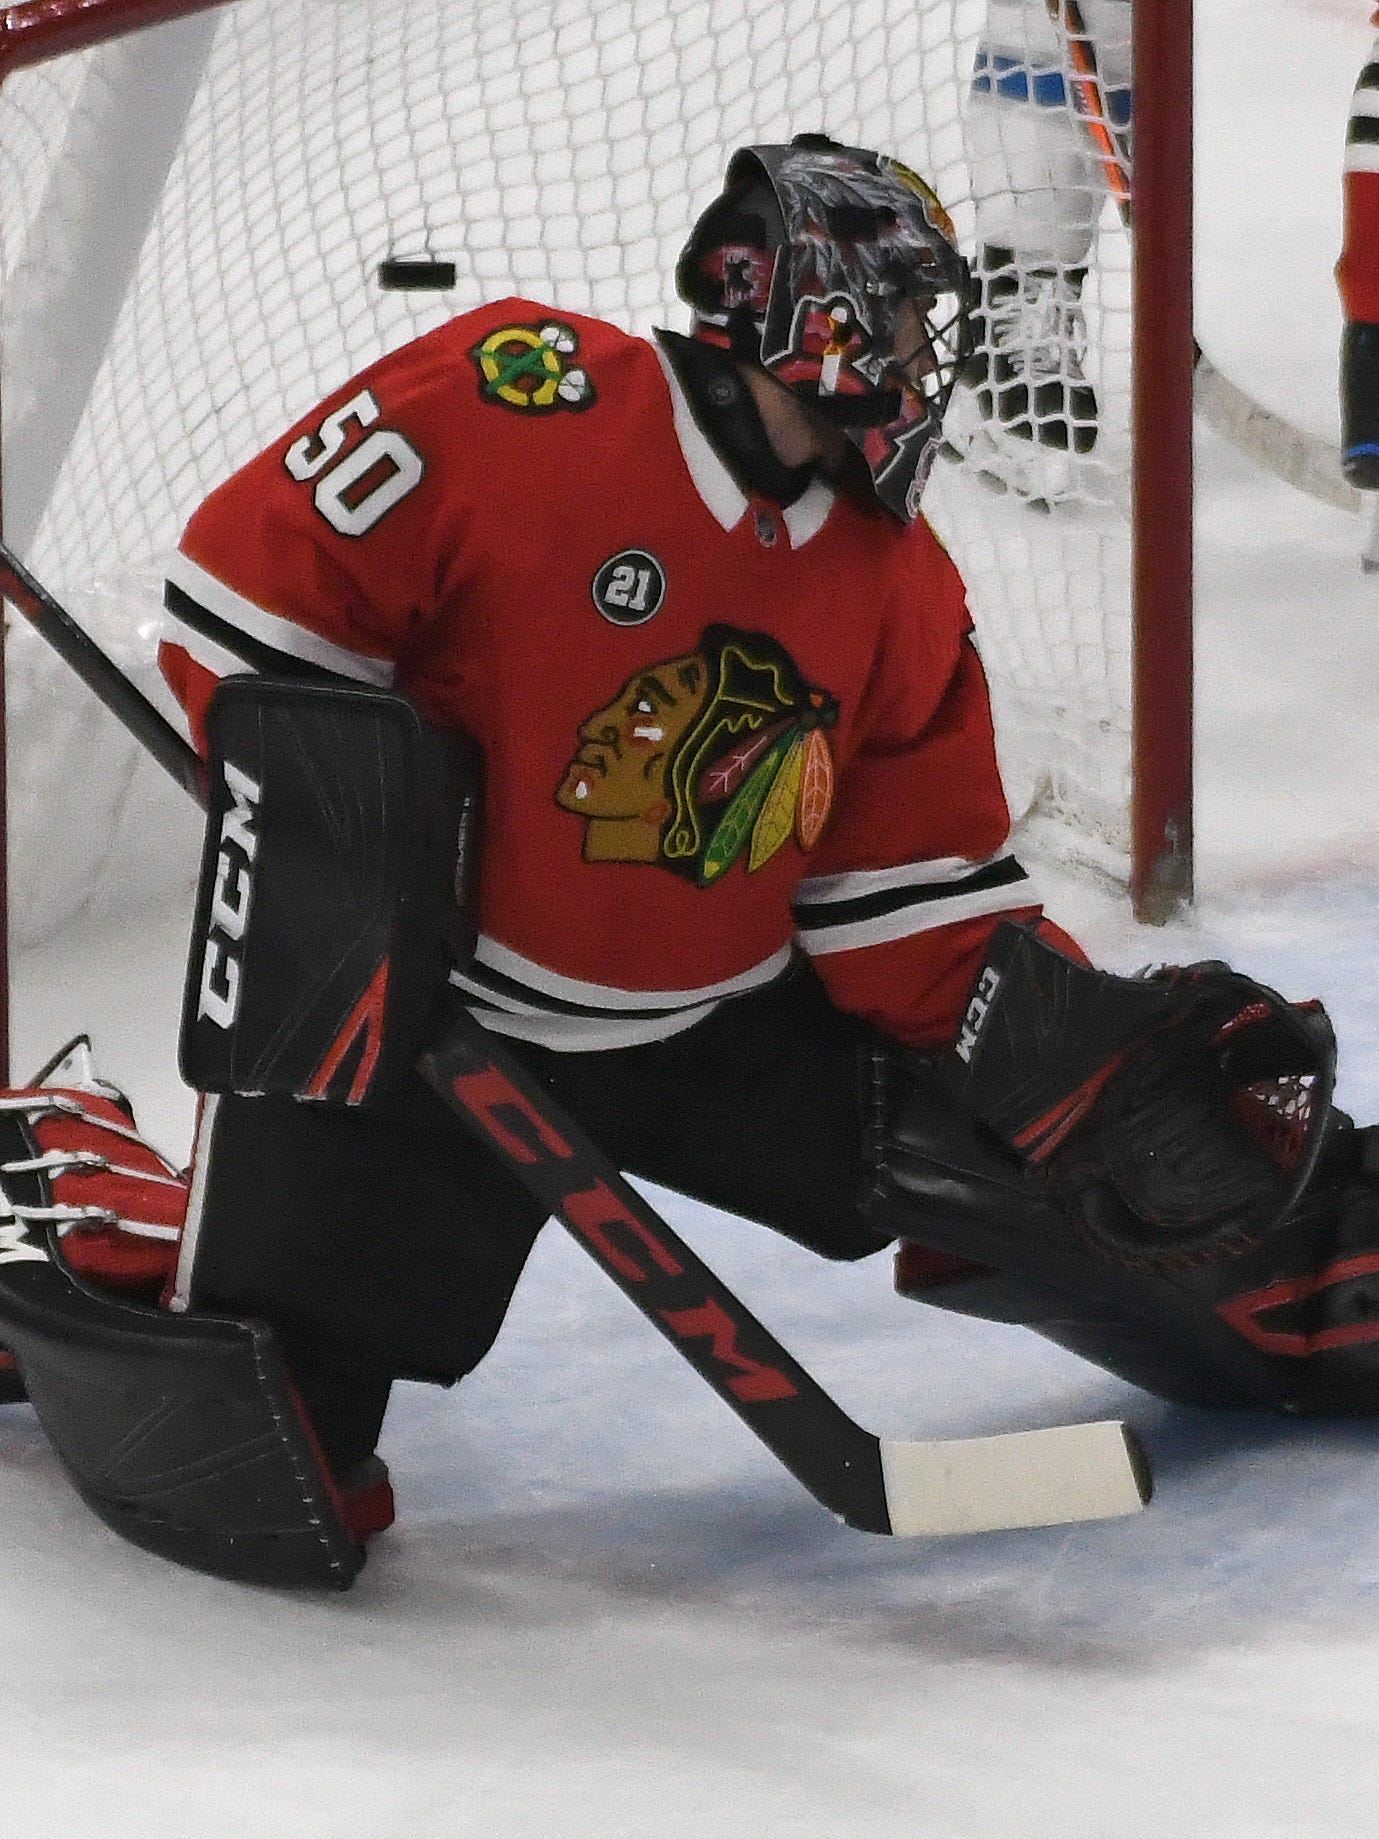 Chicago Blackhawks goaltender Corey Crawford left Sunday's game against the San Jose Sharks with 1:30 left in the first period.